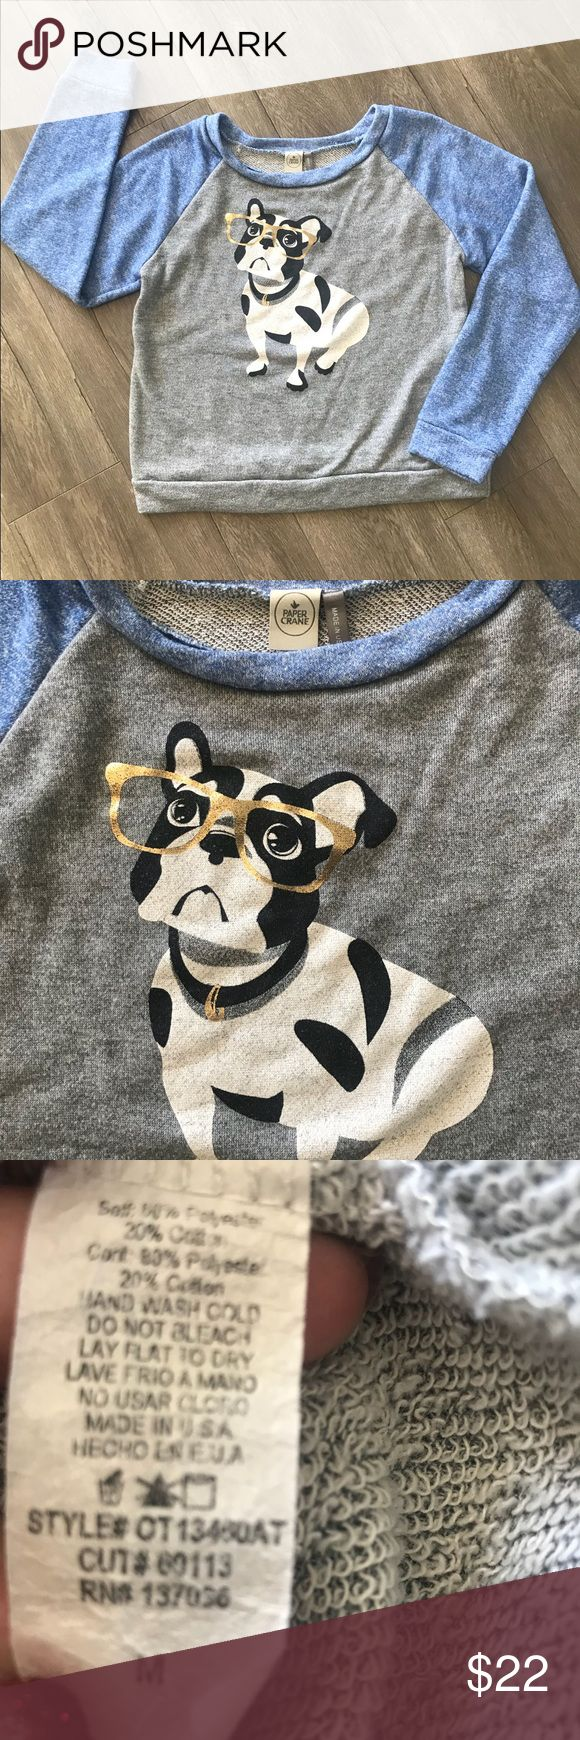 Paper Crane Lightweight Sweatshirt - Size Medium It's a Frenchie!!!  Super adorable French bulldog on this Sweatshirt with beautiful blue sleeves. Size Medium. ✔️ The fit is short at the waist ✔️ Paper Crane Tops Sweatshirts & Hoodies